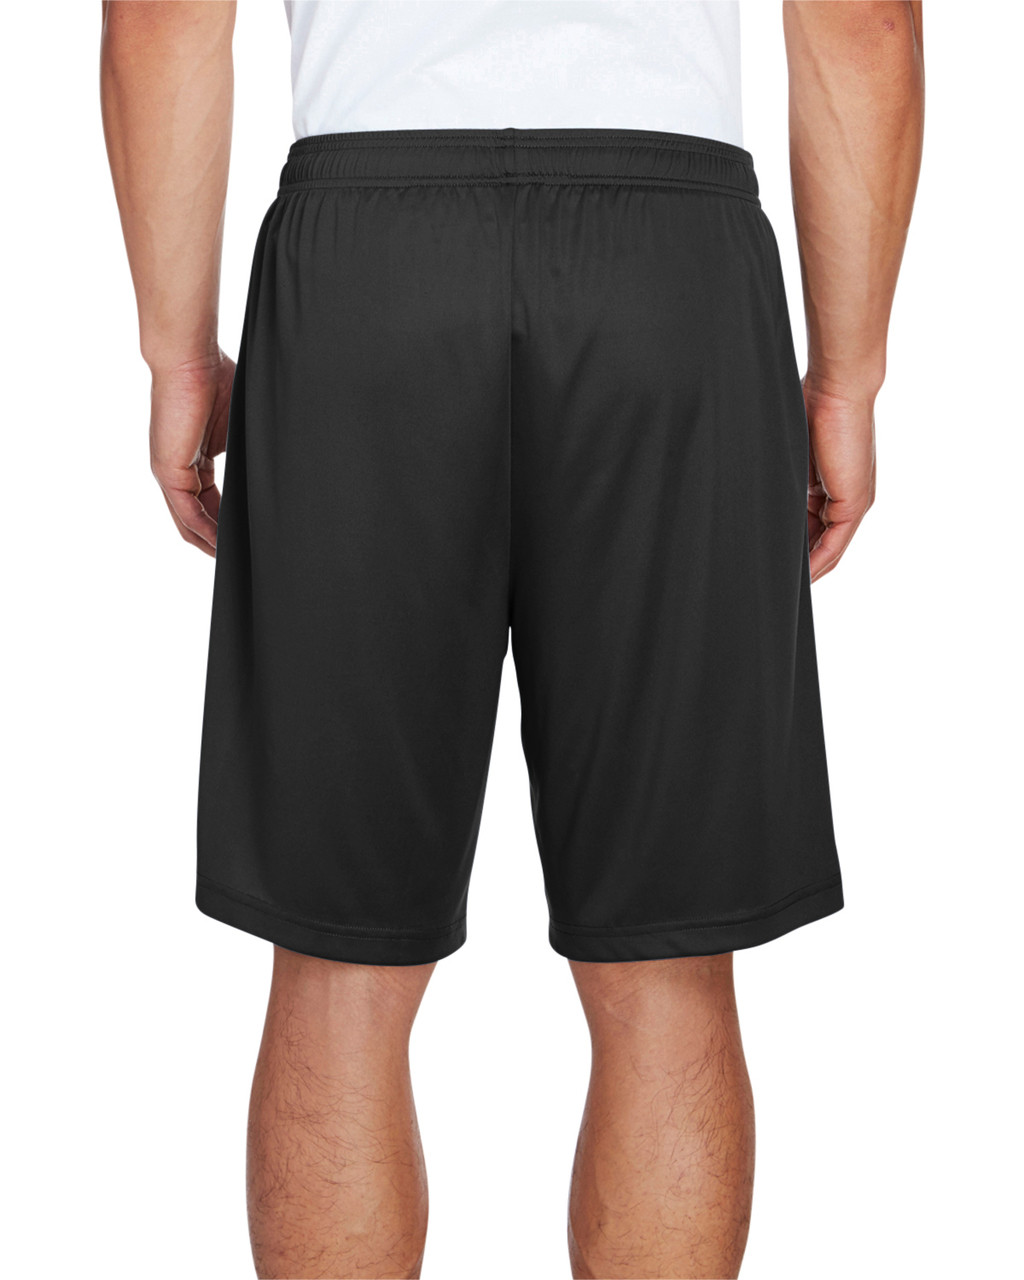 Black - Back, TT11SH Team 365 Men's Zone Performance Short | BlankClothing.ca